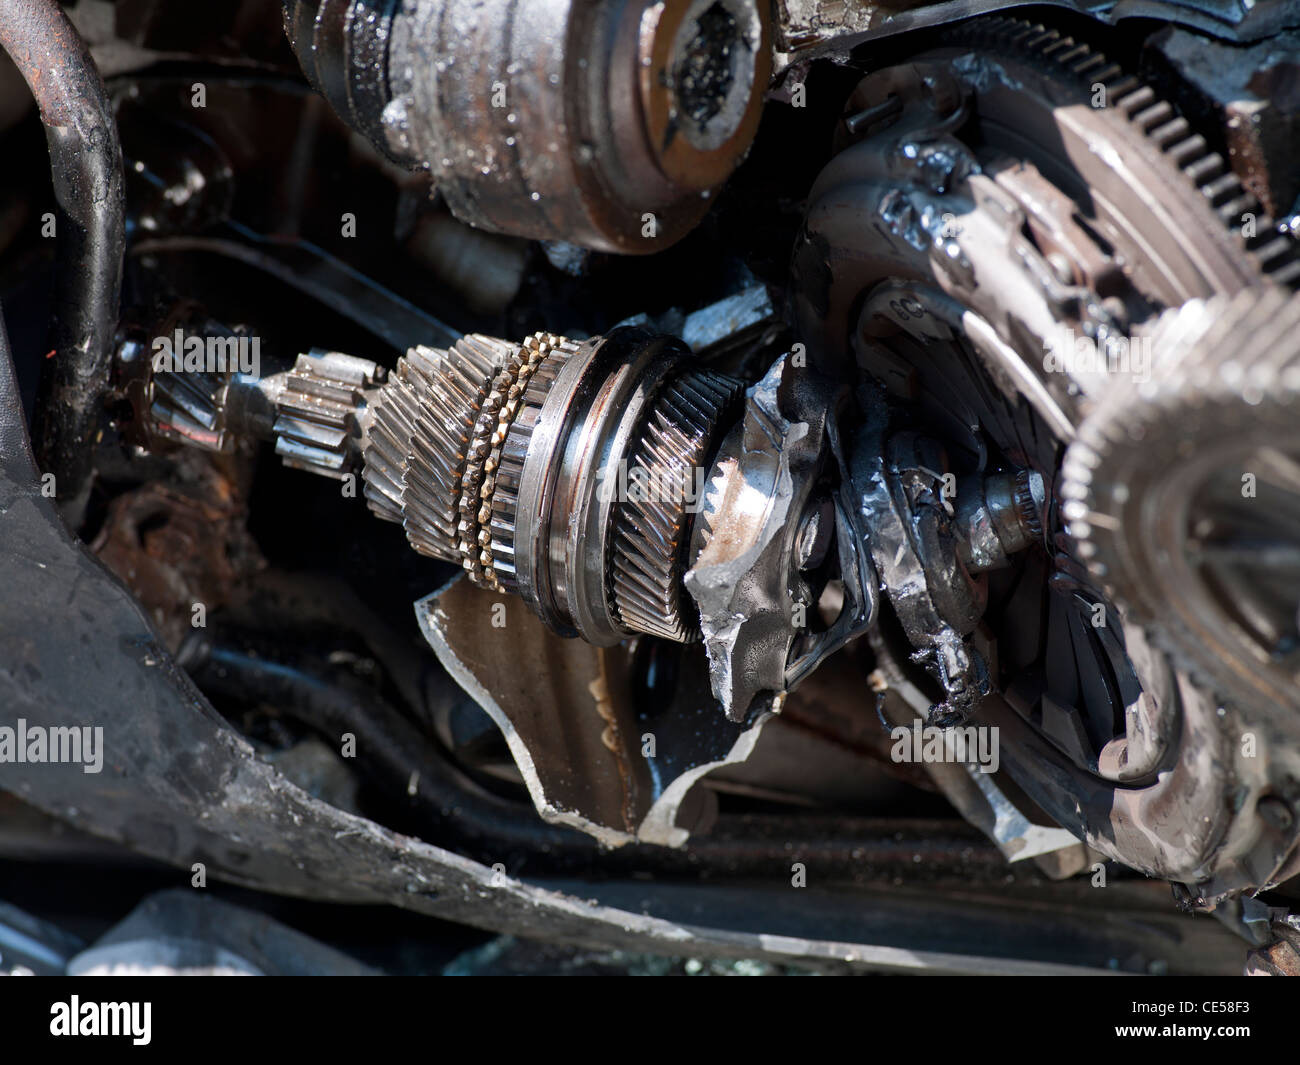 Broken Car Engine Gearbox And Clutch Assembly Stock Photo